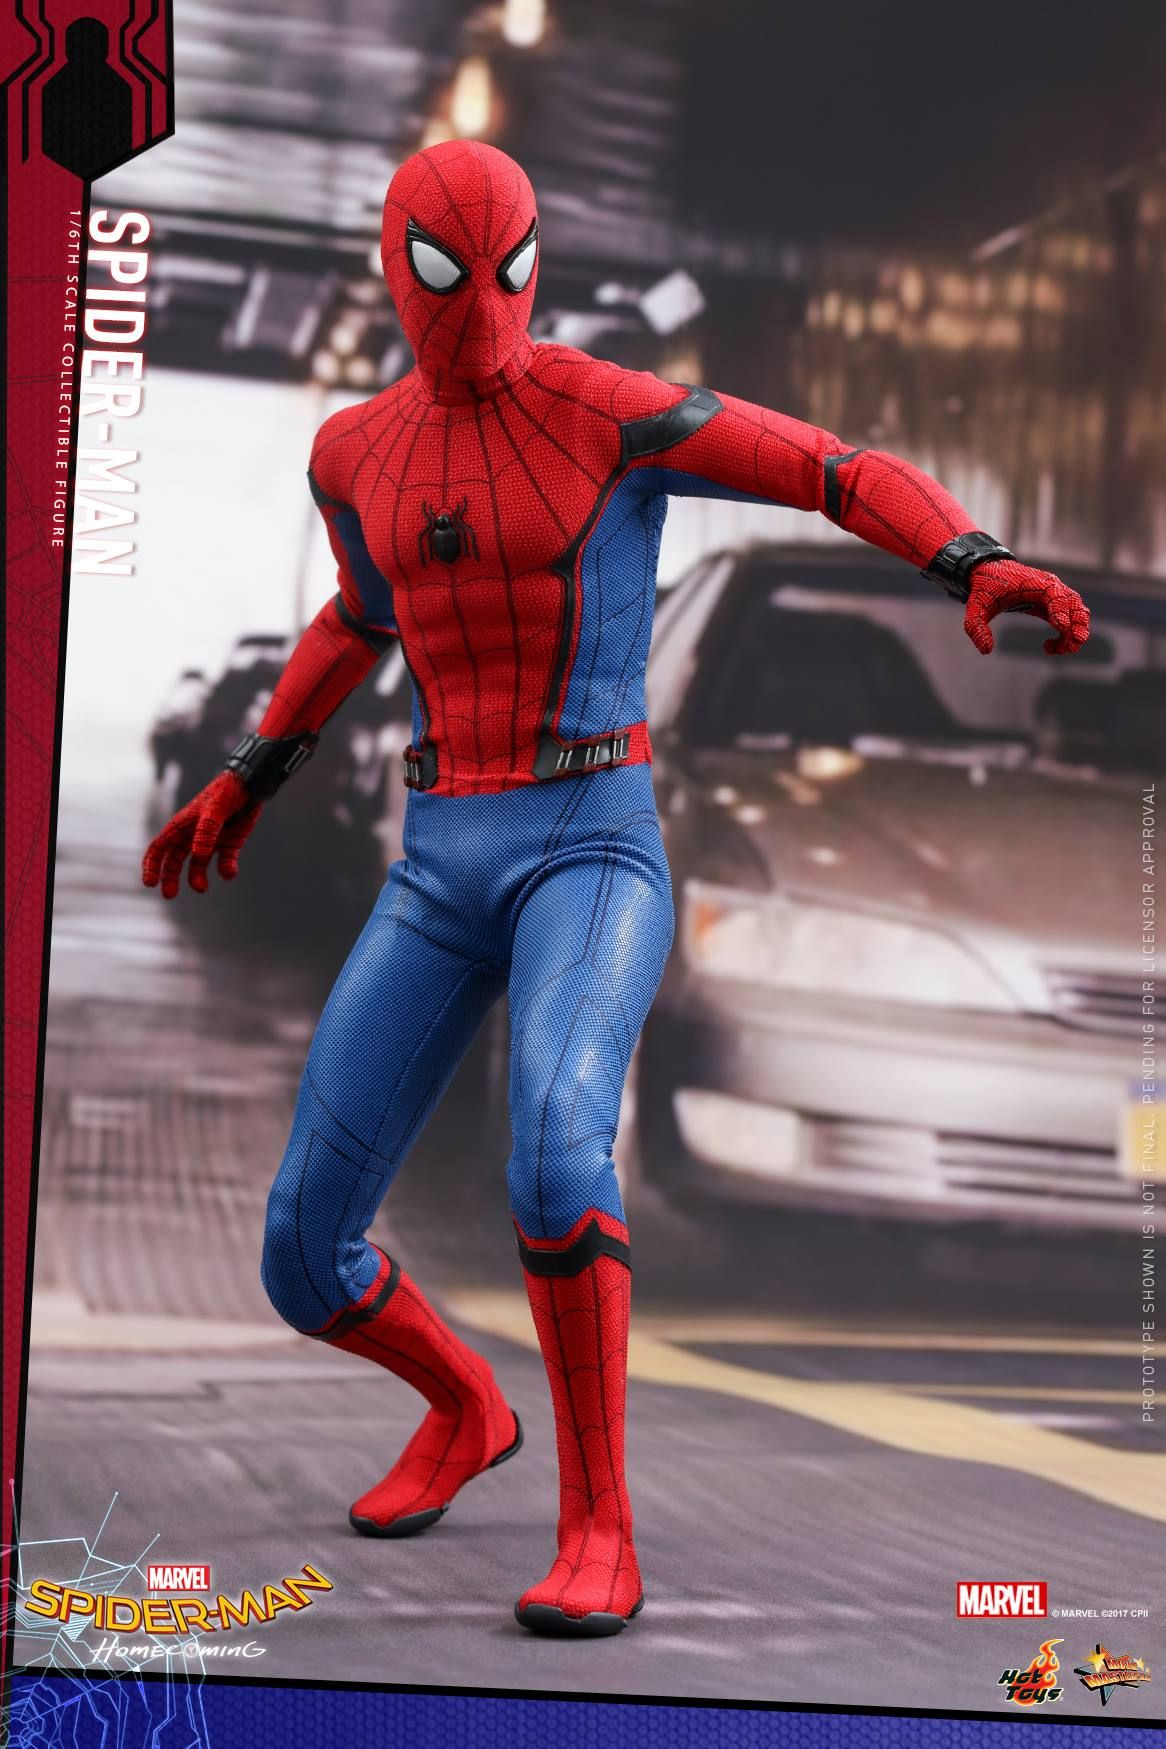 Hot Toys Shows Off Their Spider Man Homecoming Spider Man Action